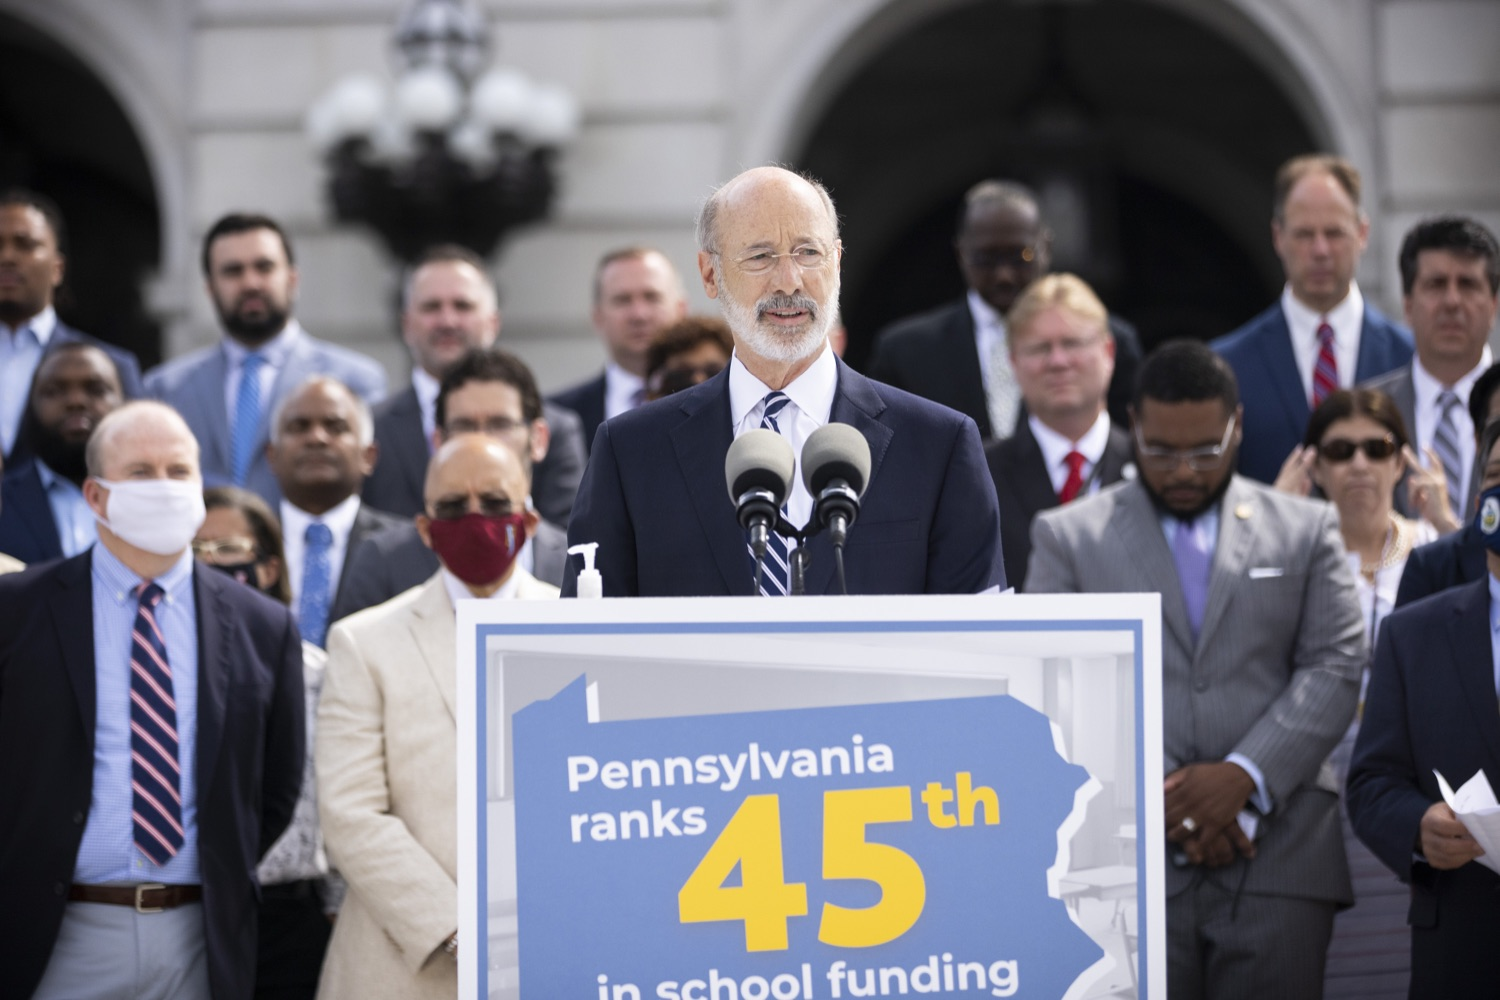 """<a href=""""https://filesource.wostreaming.net/commonwealthofpa/photo/18810_gov_fairFunding_dz_016.jpg"""" target=""""_blank"""">⇣Download Photo<br></a>Pennsylvania Governor Tom Wolf speaking with the press.  Continuing their commitment to students and working families, Governor Tom Wolf and House and Senate Democratic Leaders held a Capitol press conference today to highlight the injustice in the states school funding system and call for fair funding of every district.  Harrisburg, PA   June 8, 2021"""